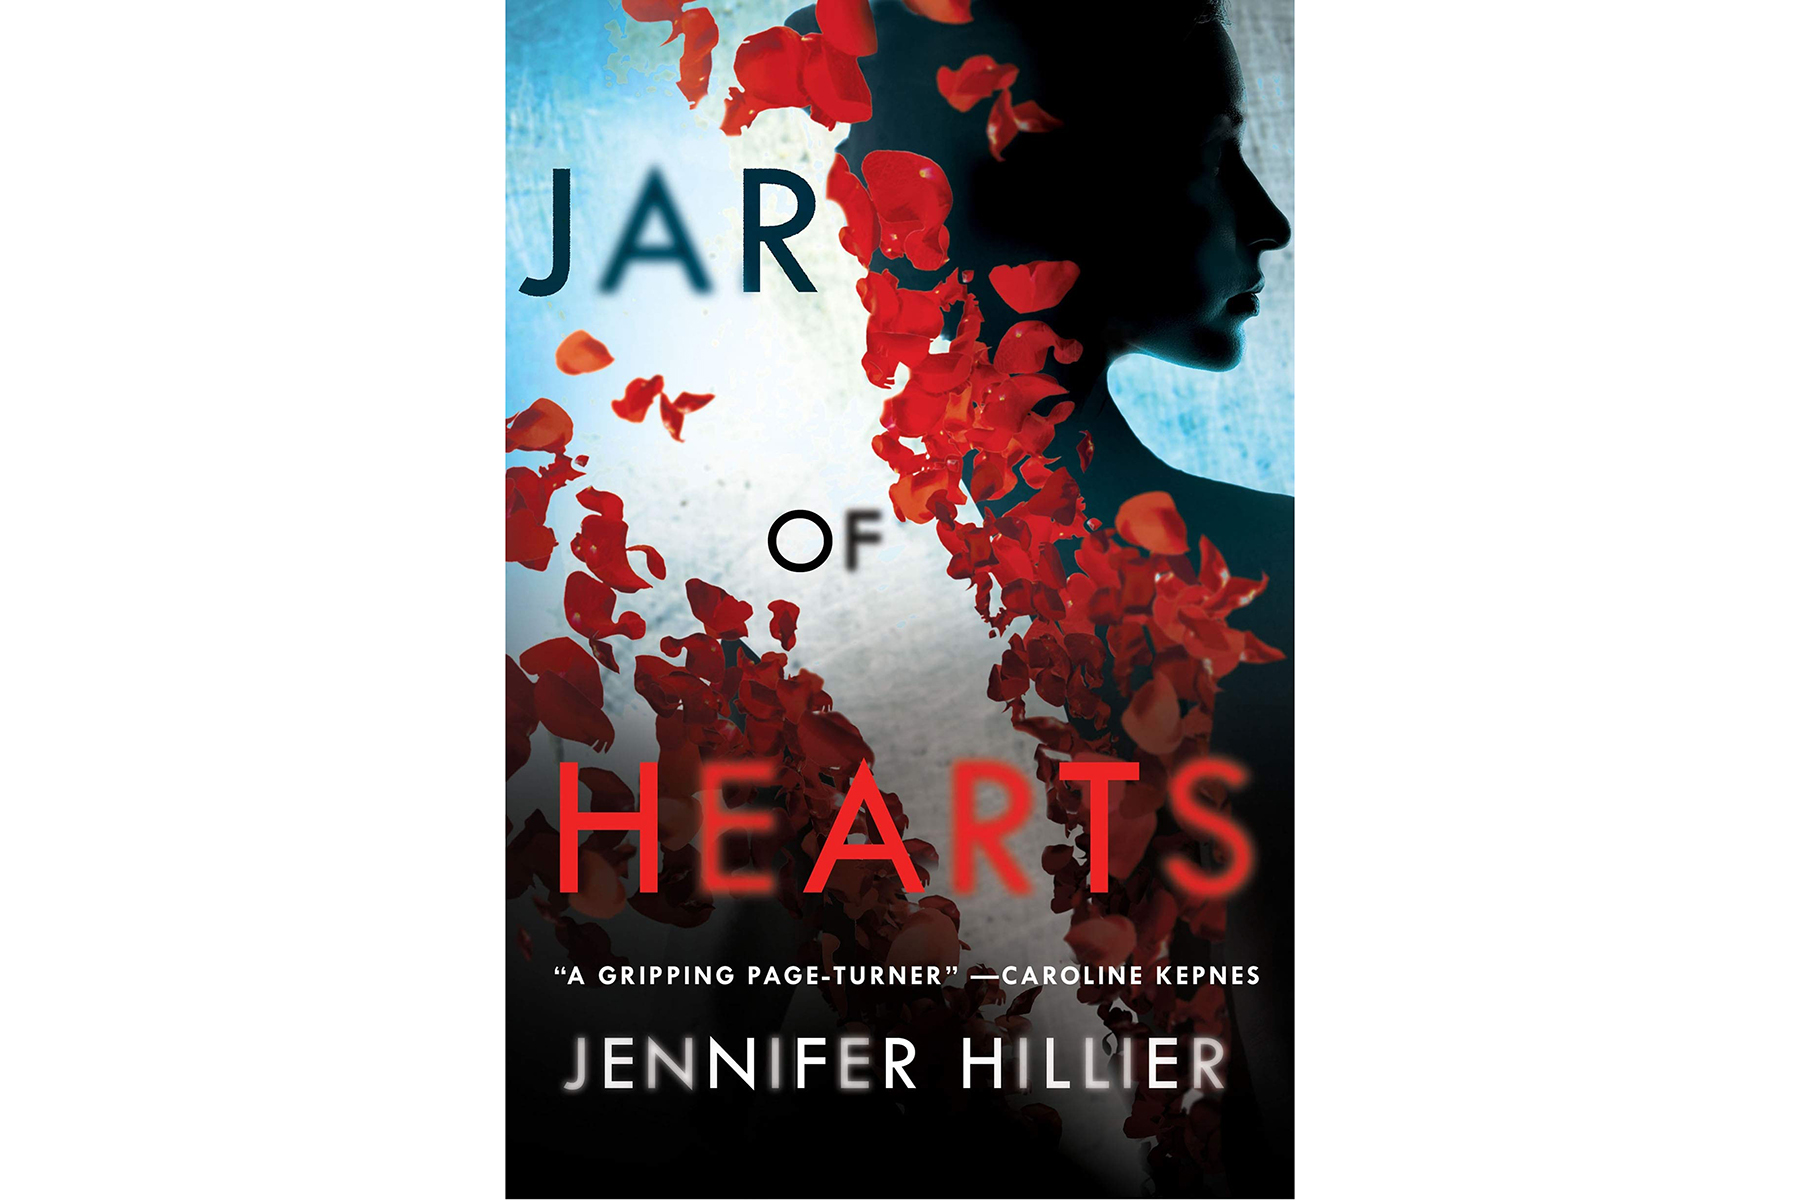 Cover of Jar of Hearts, by Jennifer Hillier